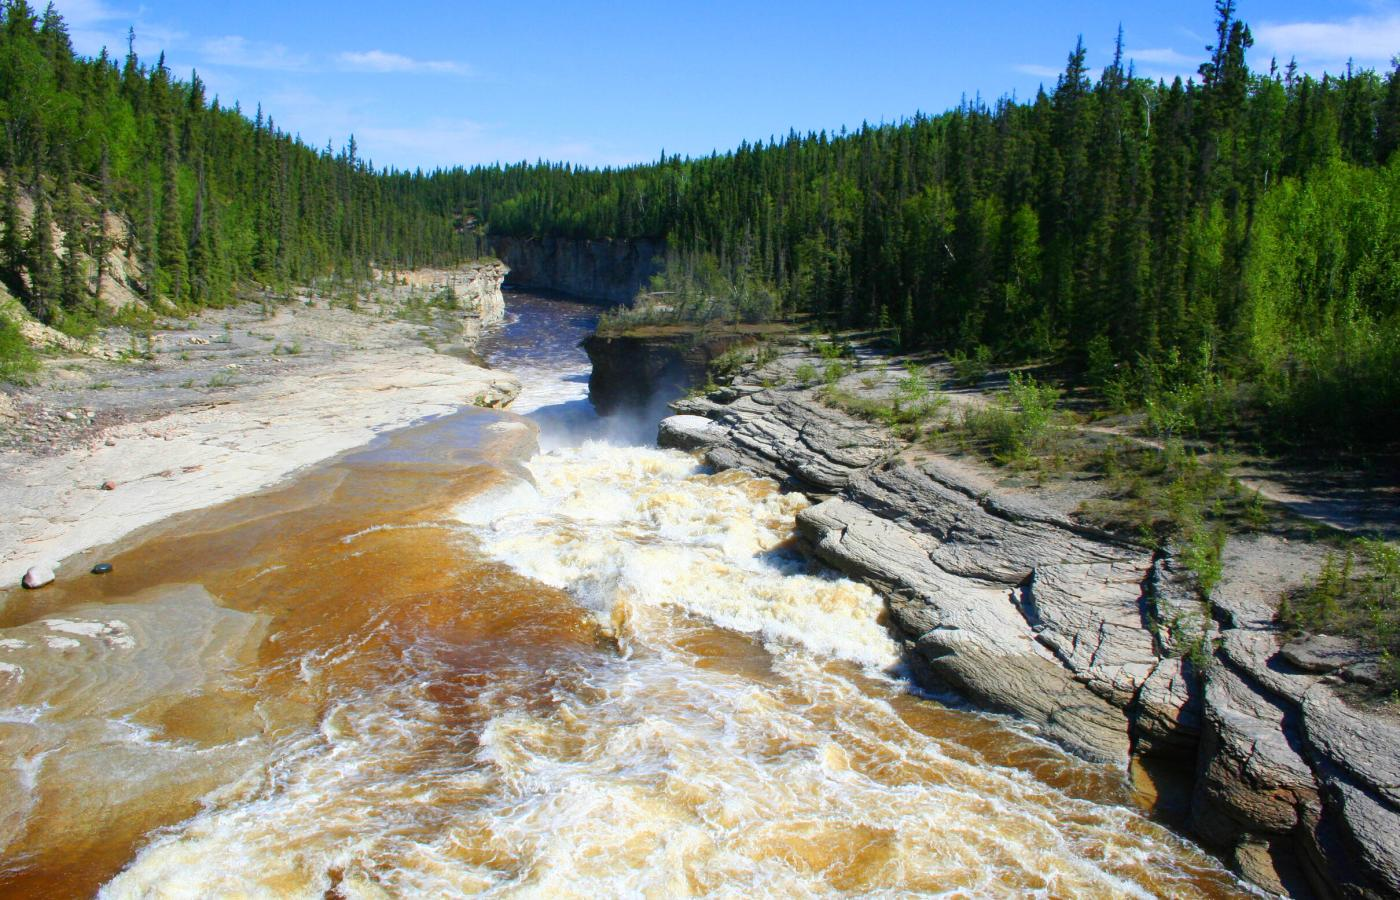 The Sambaa Deh Canyon makes a great day-hike in the Dehcho Region of the Northwest Territories.